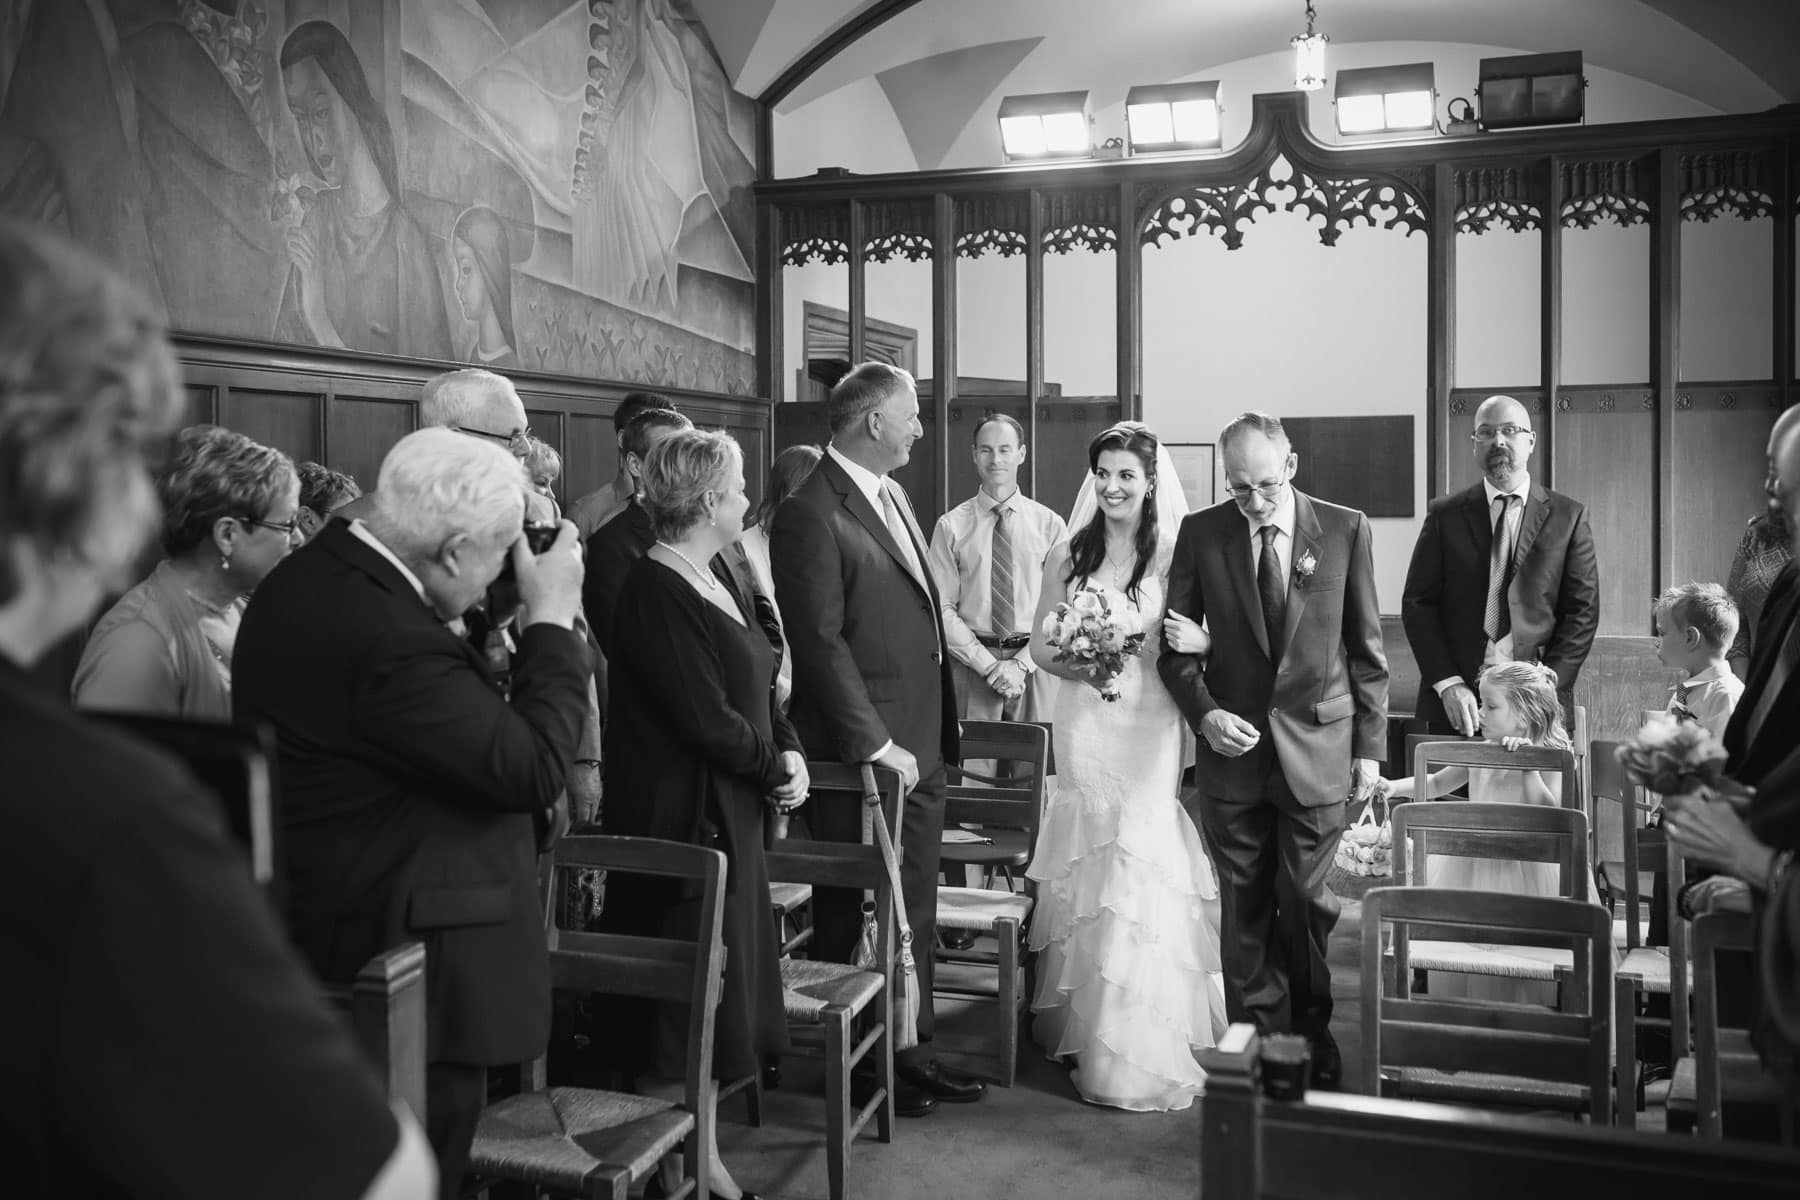 The bride's father walks her down the aisle in this Hart House wedding photo.